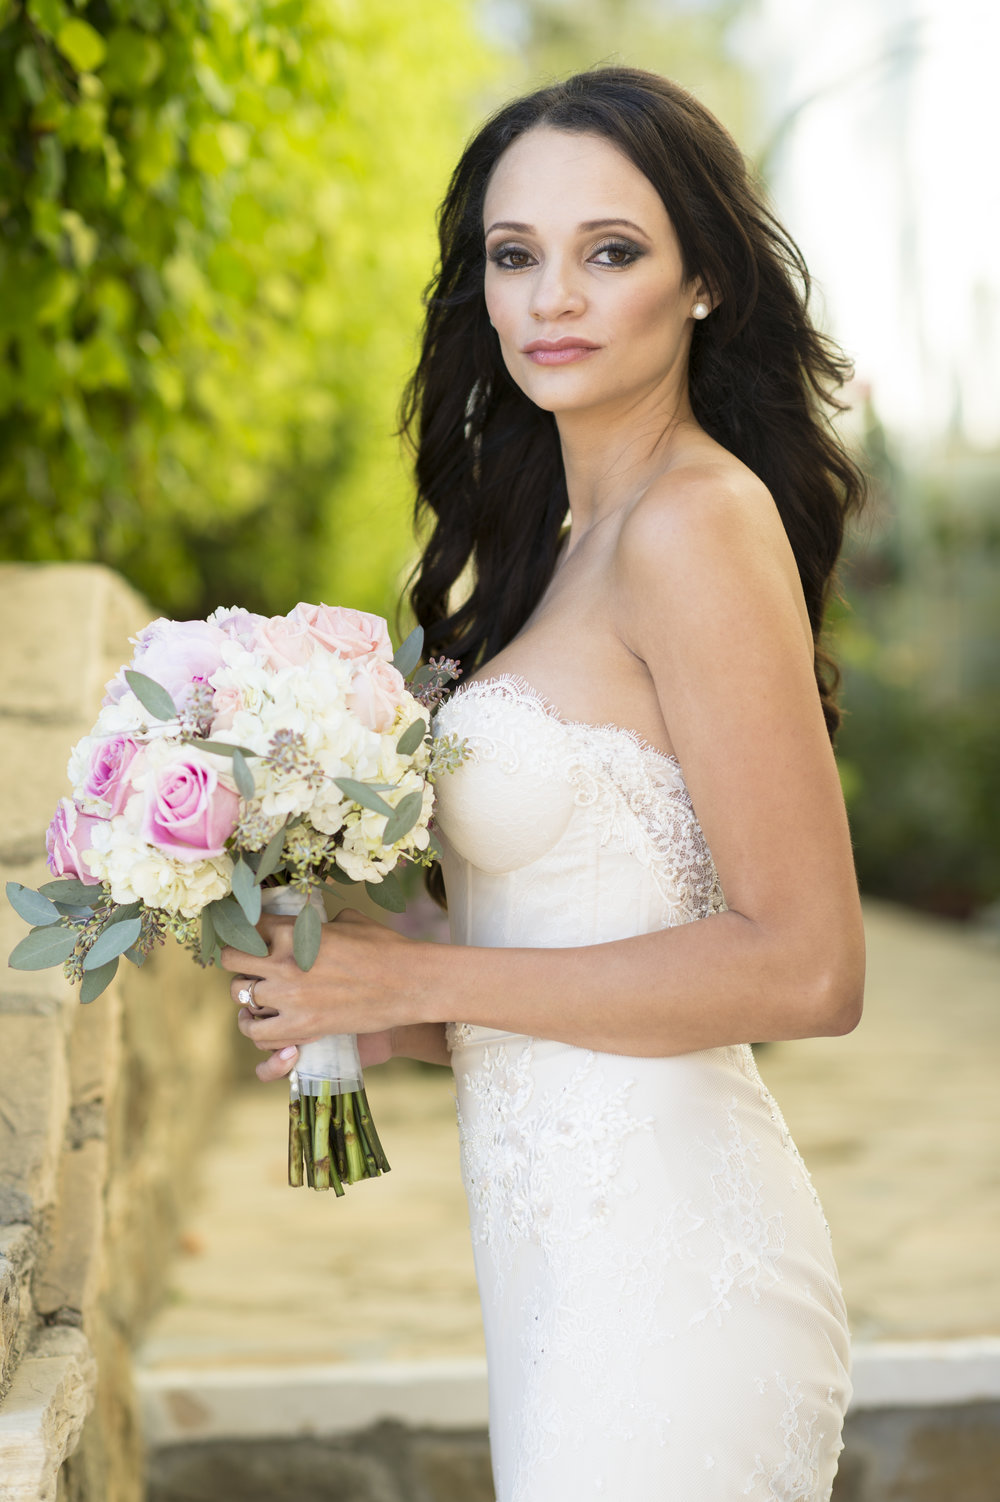 Bride Portraits - A Romantic Bel Air Bay Club Ocean-View Wedding - Southern California Wedding - Kevin Dinh Photography